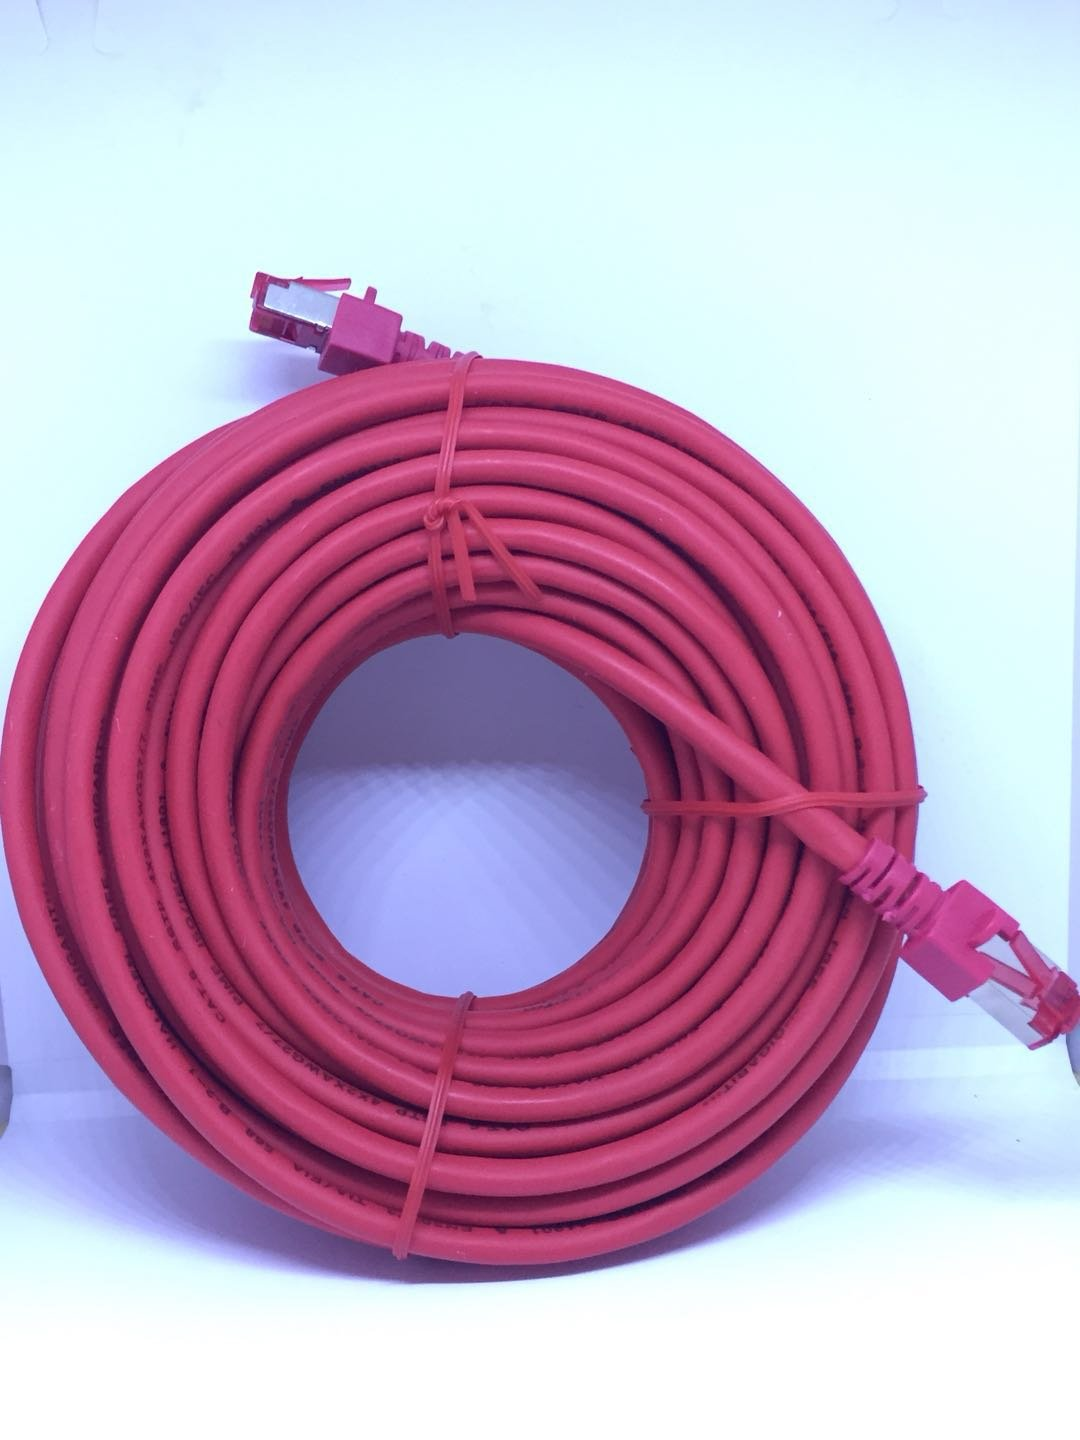 Skyline High Speed CAT.6 Ethernet Cable SSTP Patch Cable with Aluminum Alloy shield RJ45 Jack for Ethernet HALOGEN FREE 15 Meter (50 FT)(Red)